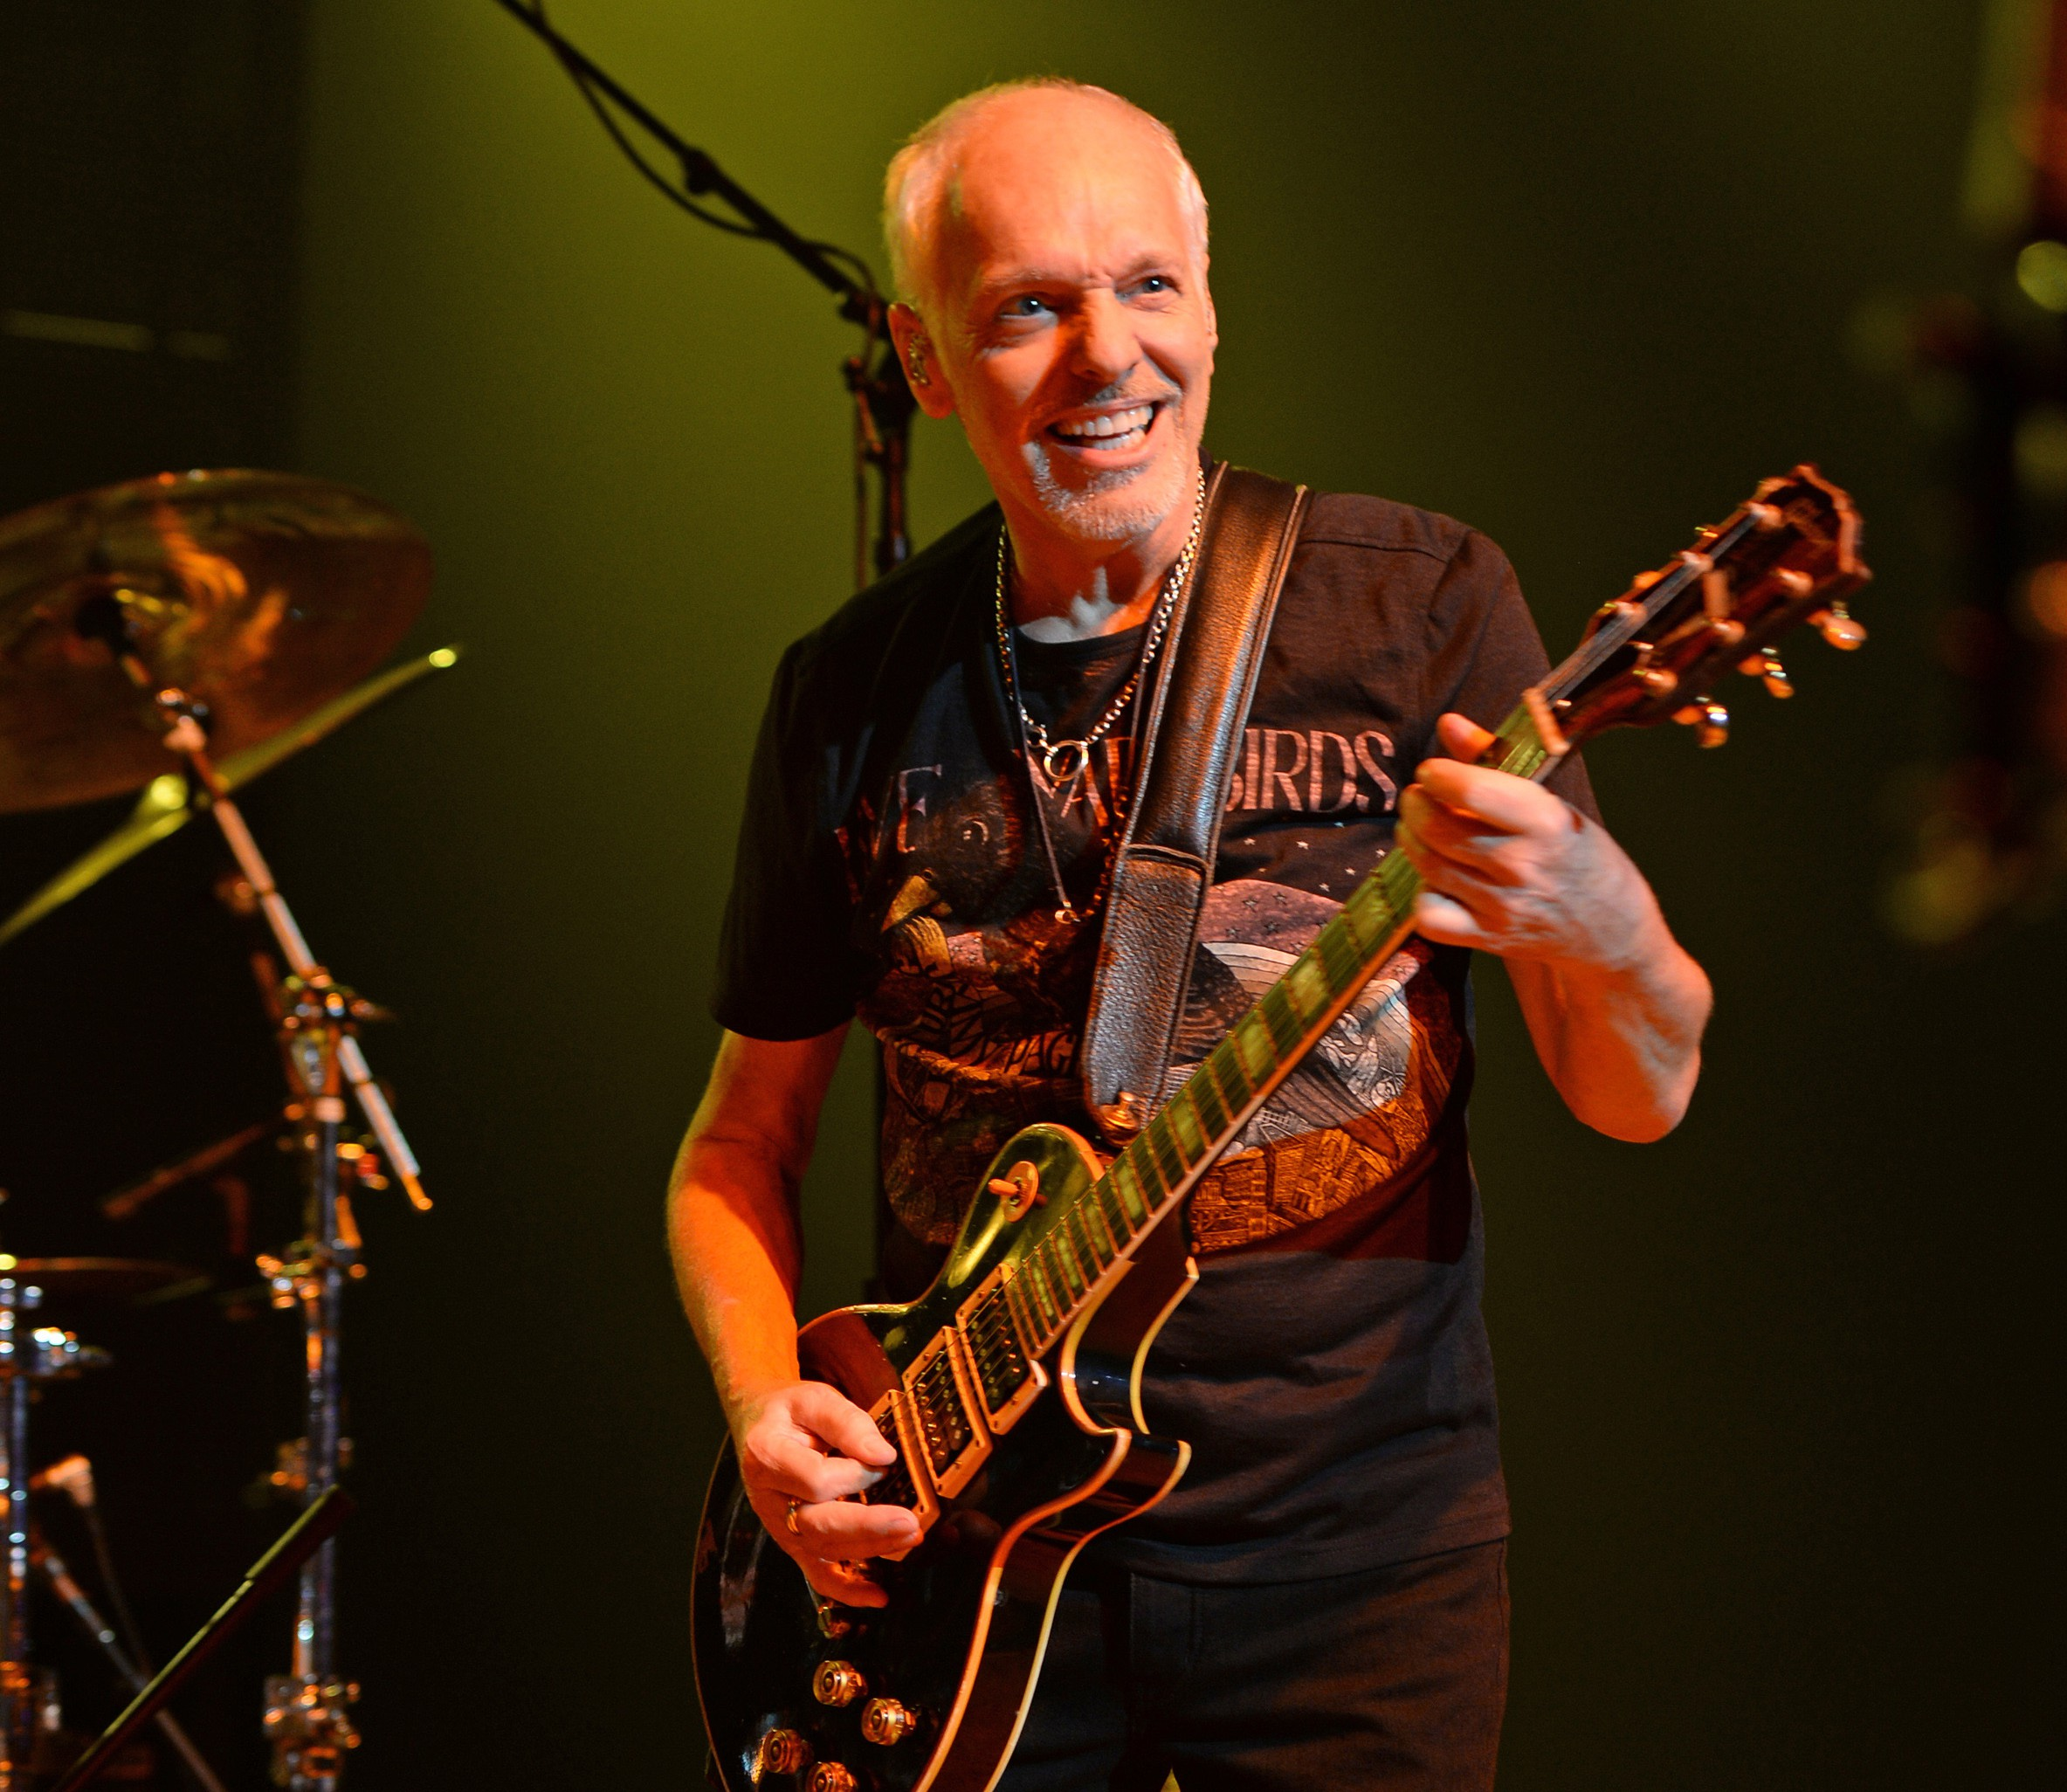 Peter Frampton performs on the Grandstand stage at the San Diego County Fair June 10. Photo by Larry Marano, Getty Images